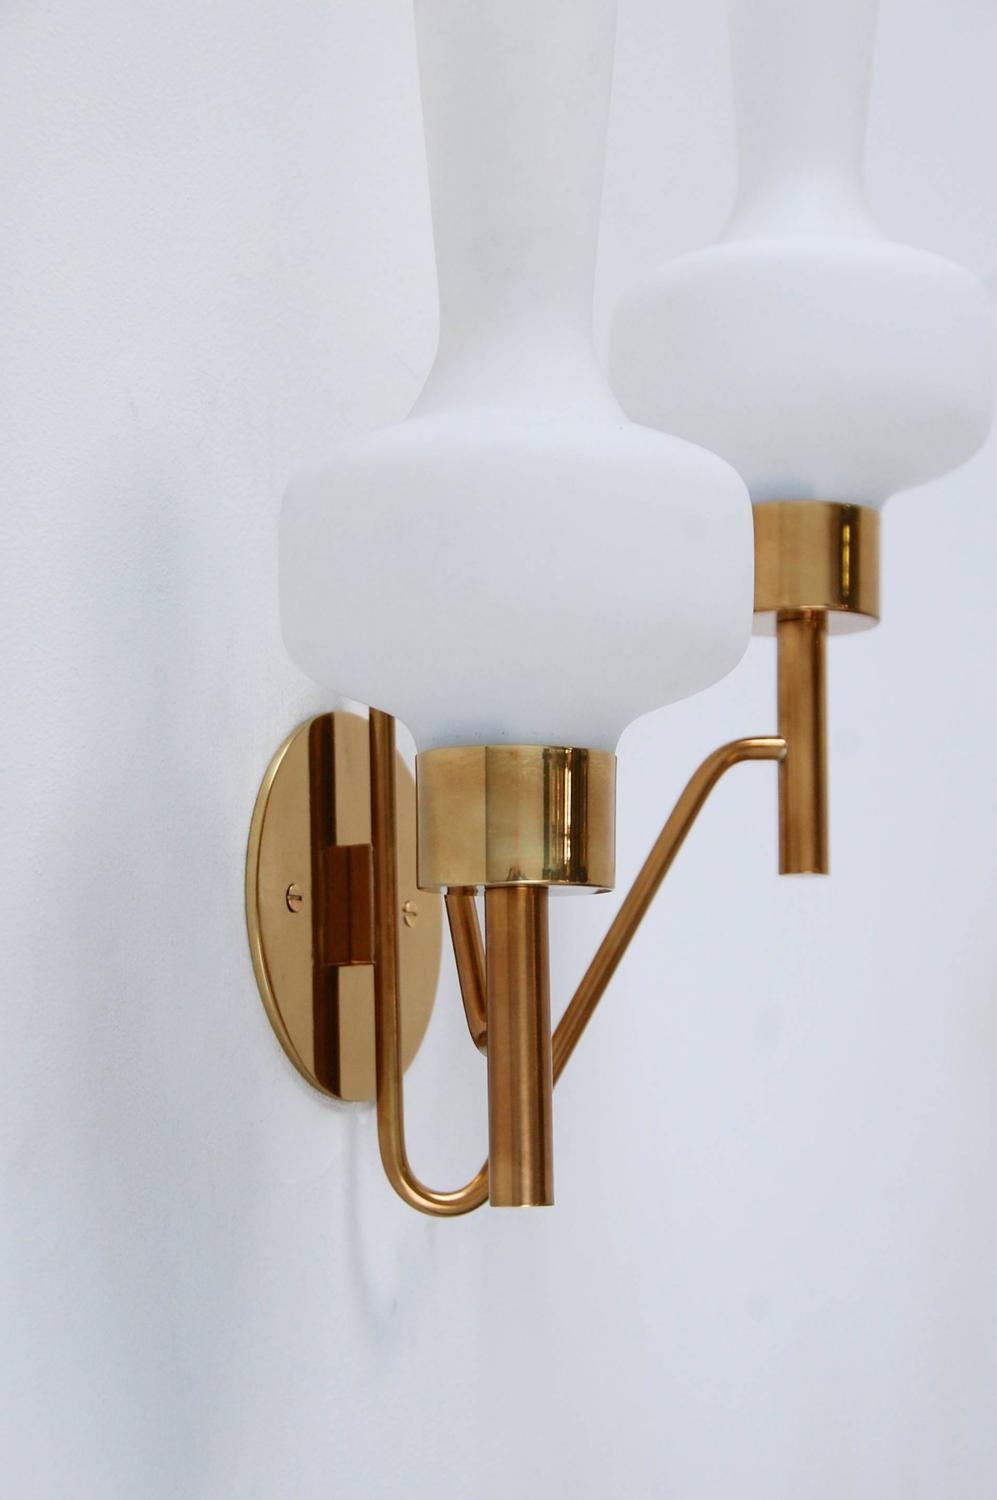 Classic Italian Double Shade Sconce For Sale at 1stdibs